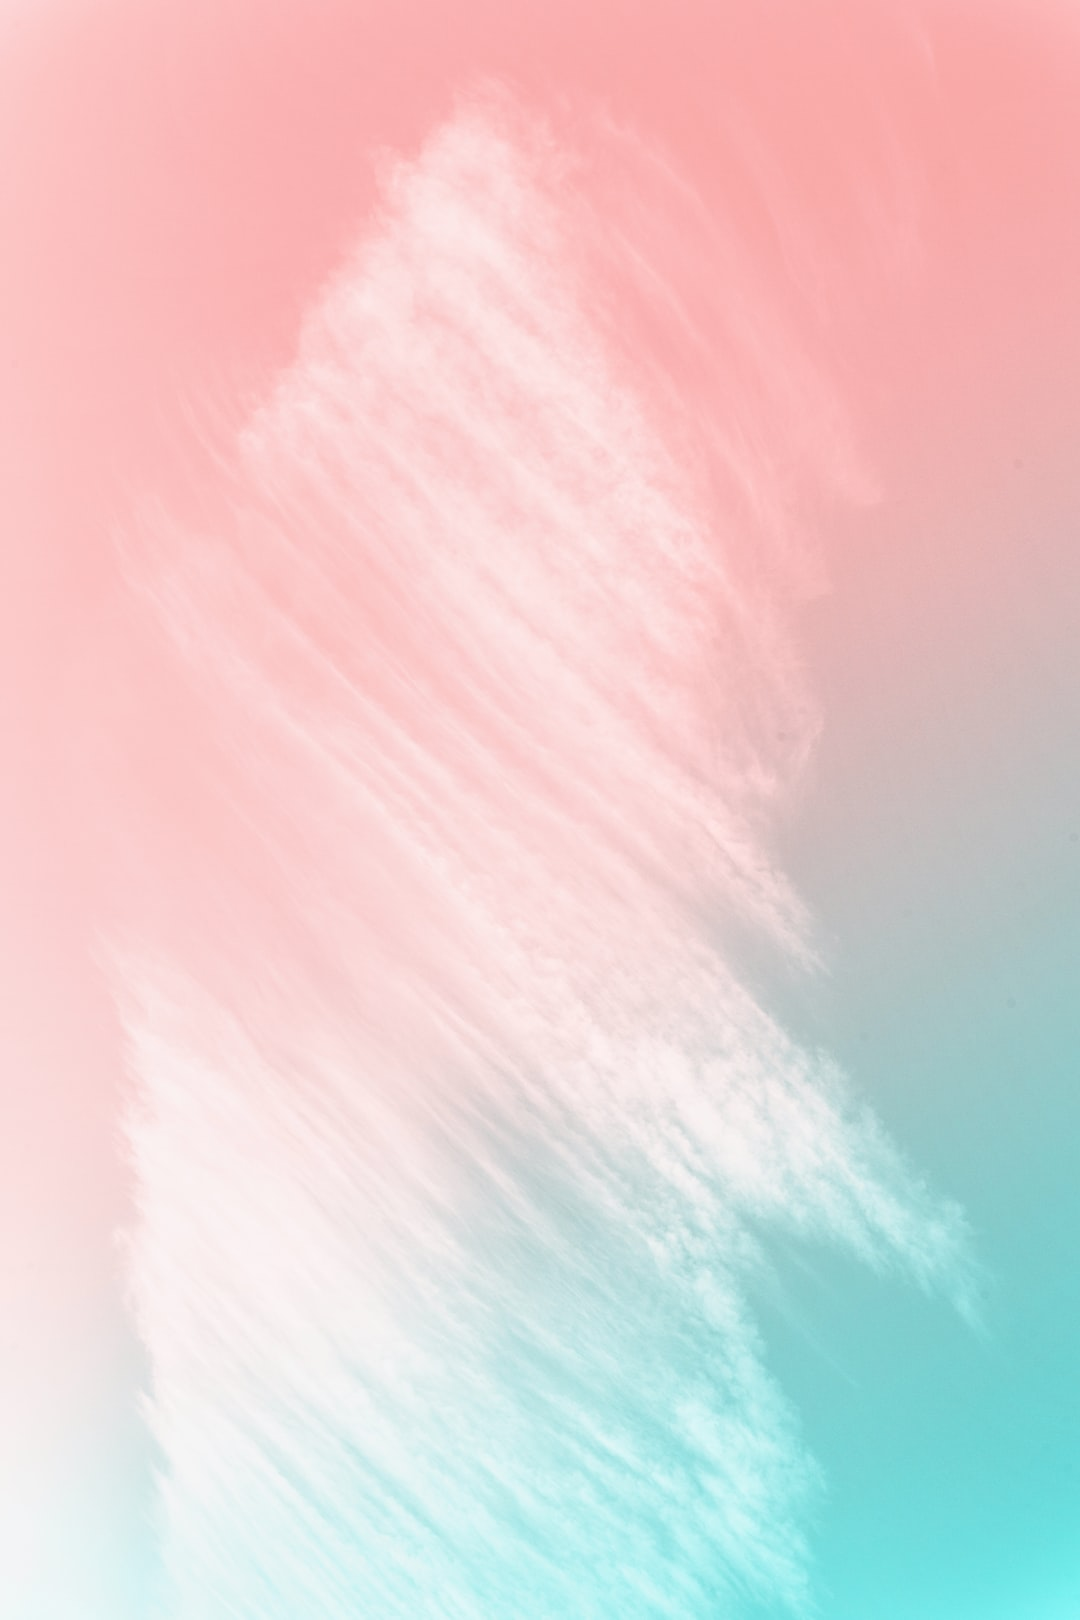 Pastel Wallpapers Free Hd Download 500 Hq Unsplash